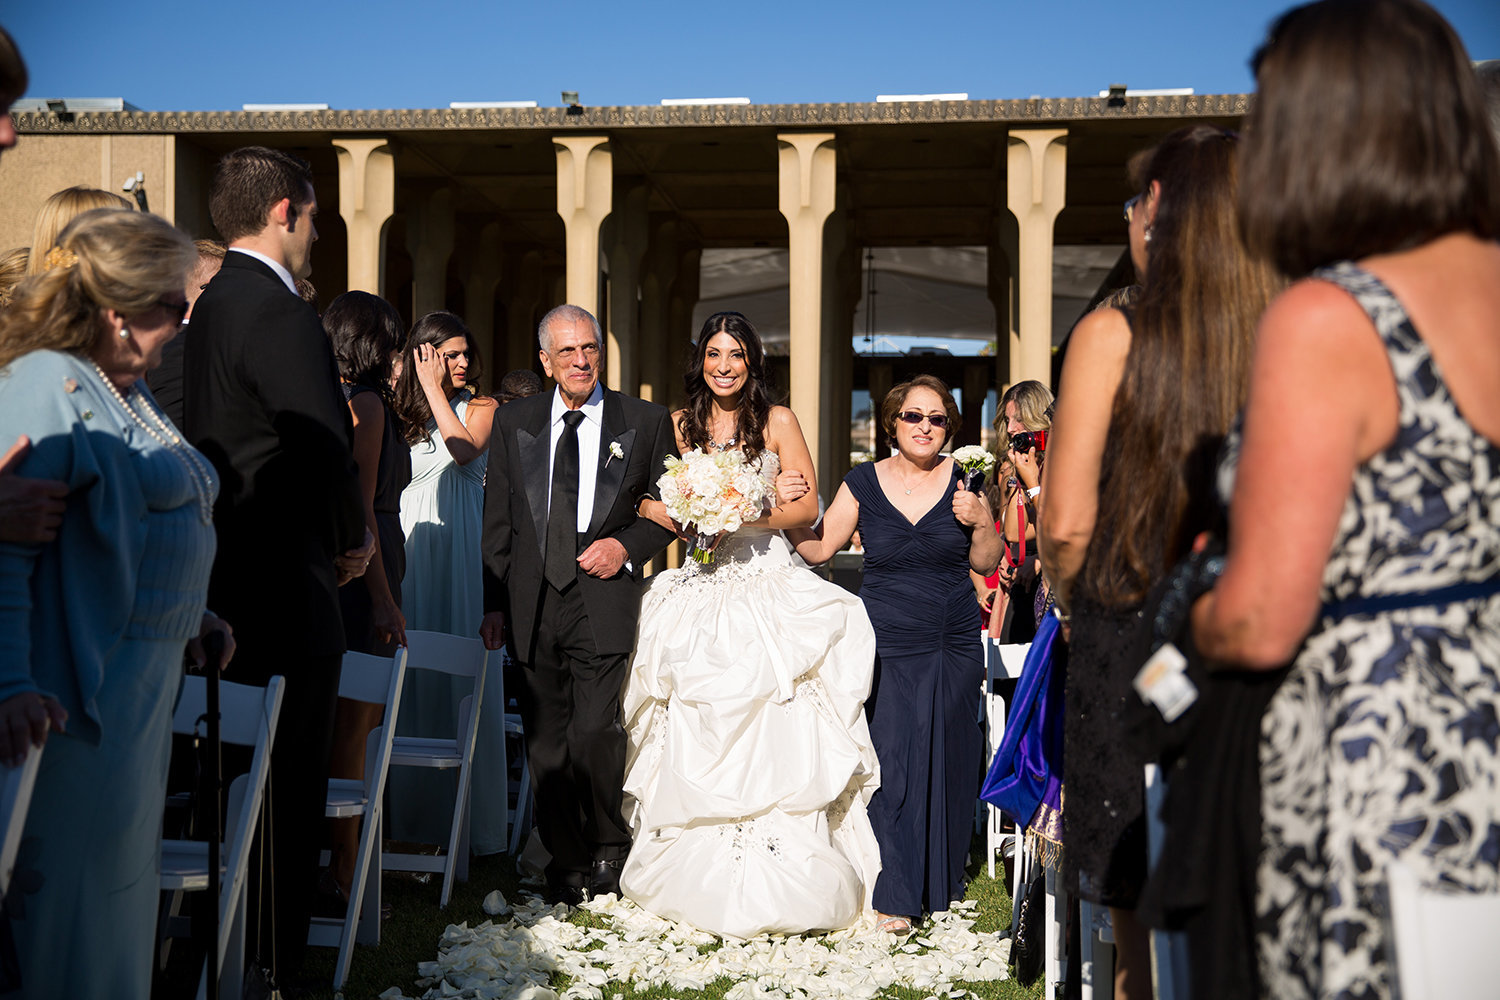 A beautiful Persian bride makes her way down the aisle with her parents